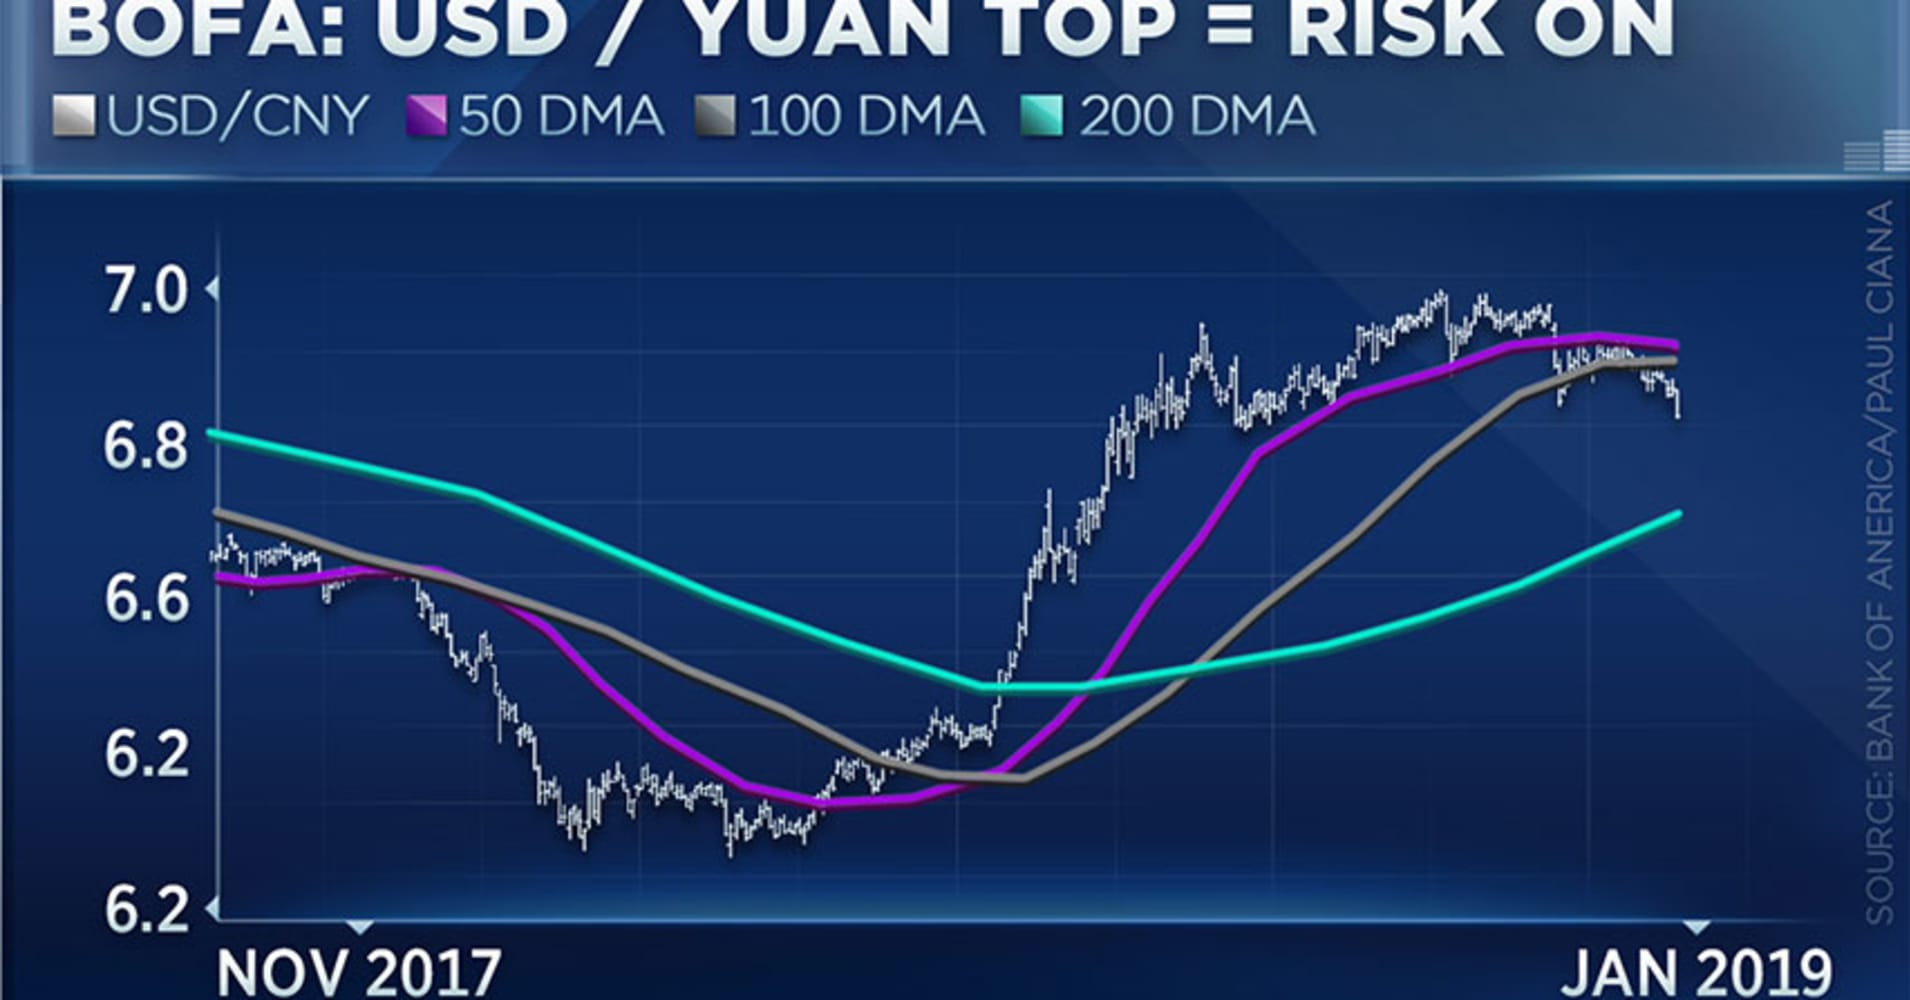 Stock market rally has legs suggests BofA currency chart